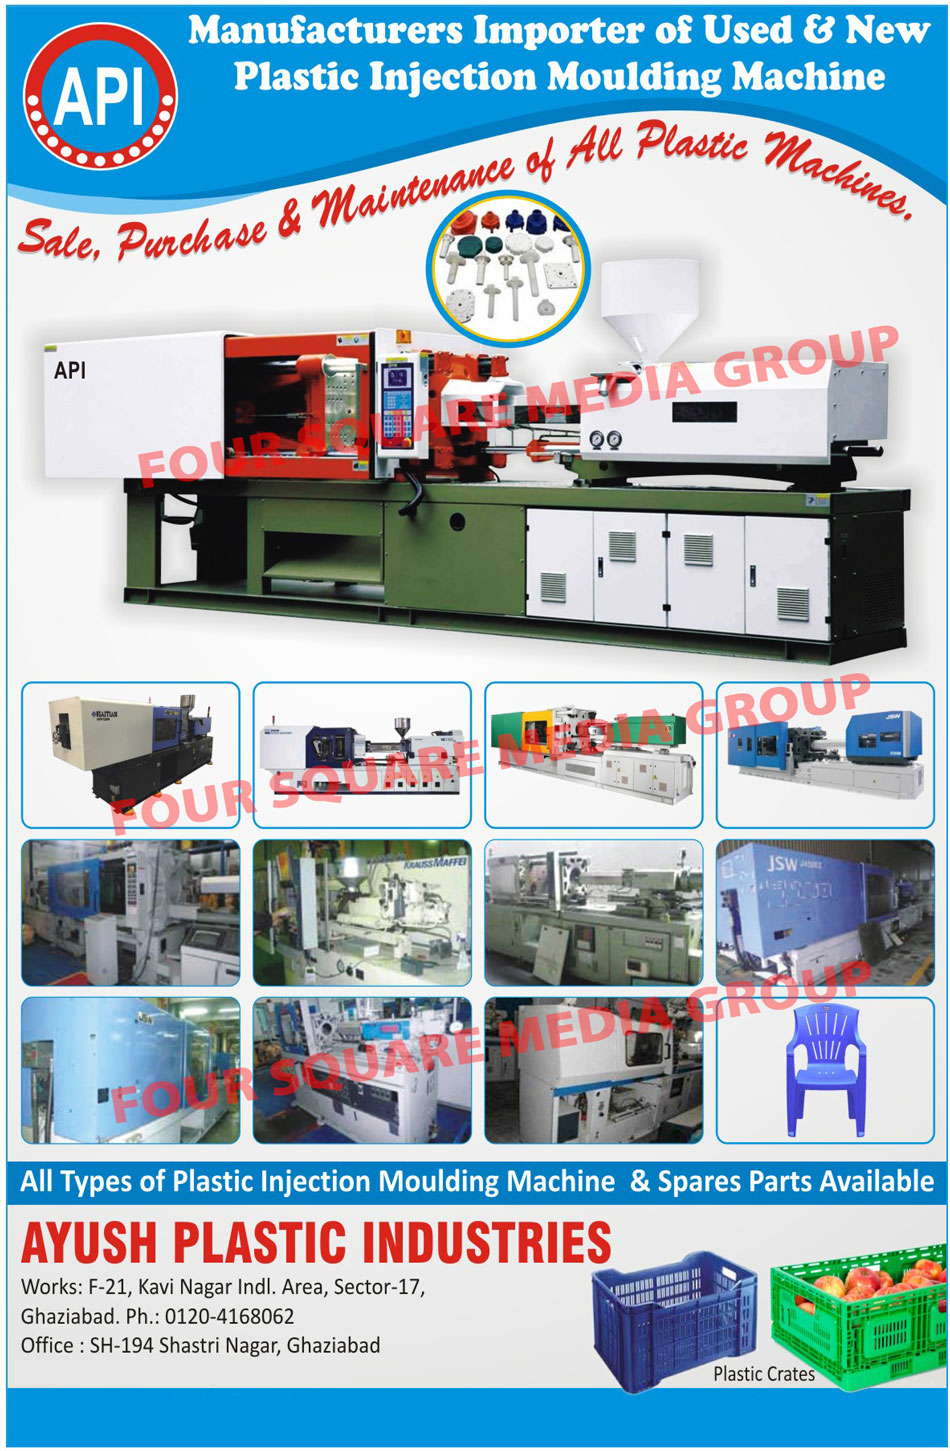 Used Plastic Injection Moulding Machines, Plastic Injection Moulding Machines, Plastic Injection Molding Machines, Plastic Moulded Components, Blow Moulded Plastic Components, Battery Containers, Automatic Plastic Moulding Machines, Battery Container Accessories, Industrial Moulding Machines, Used Plastic Injection Molding Machines